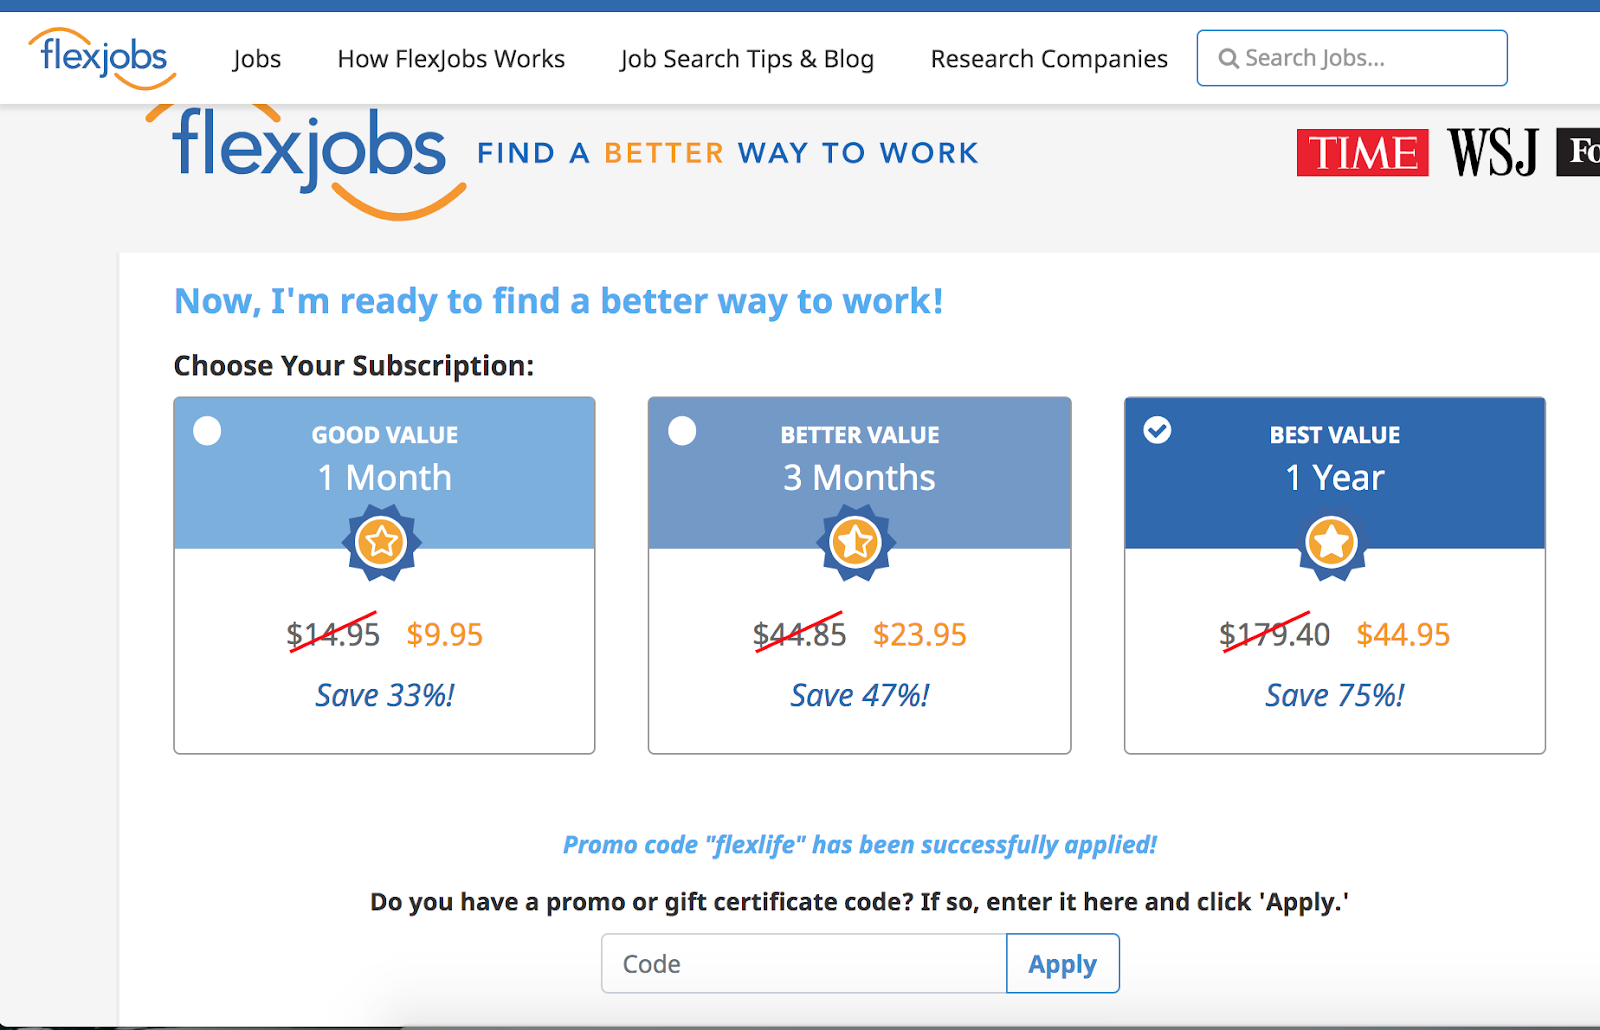 shows price page of flexjobs website.